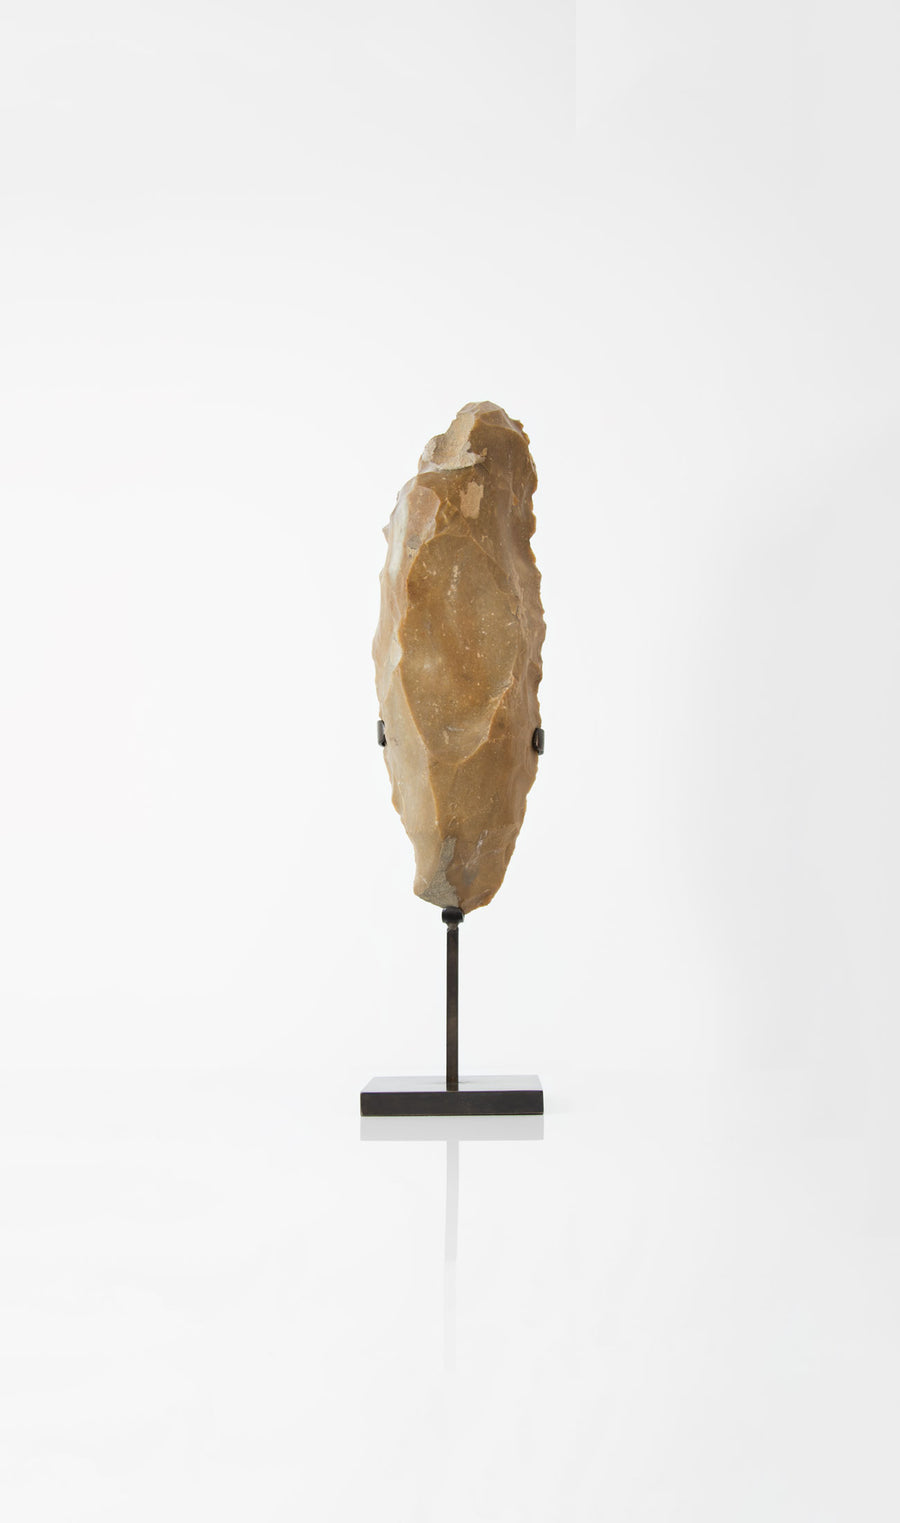 A stunning museum-standard rare authentic Neolithic core flint measuring 372mm created by an ancient hand